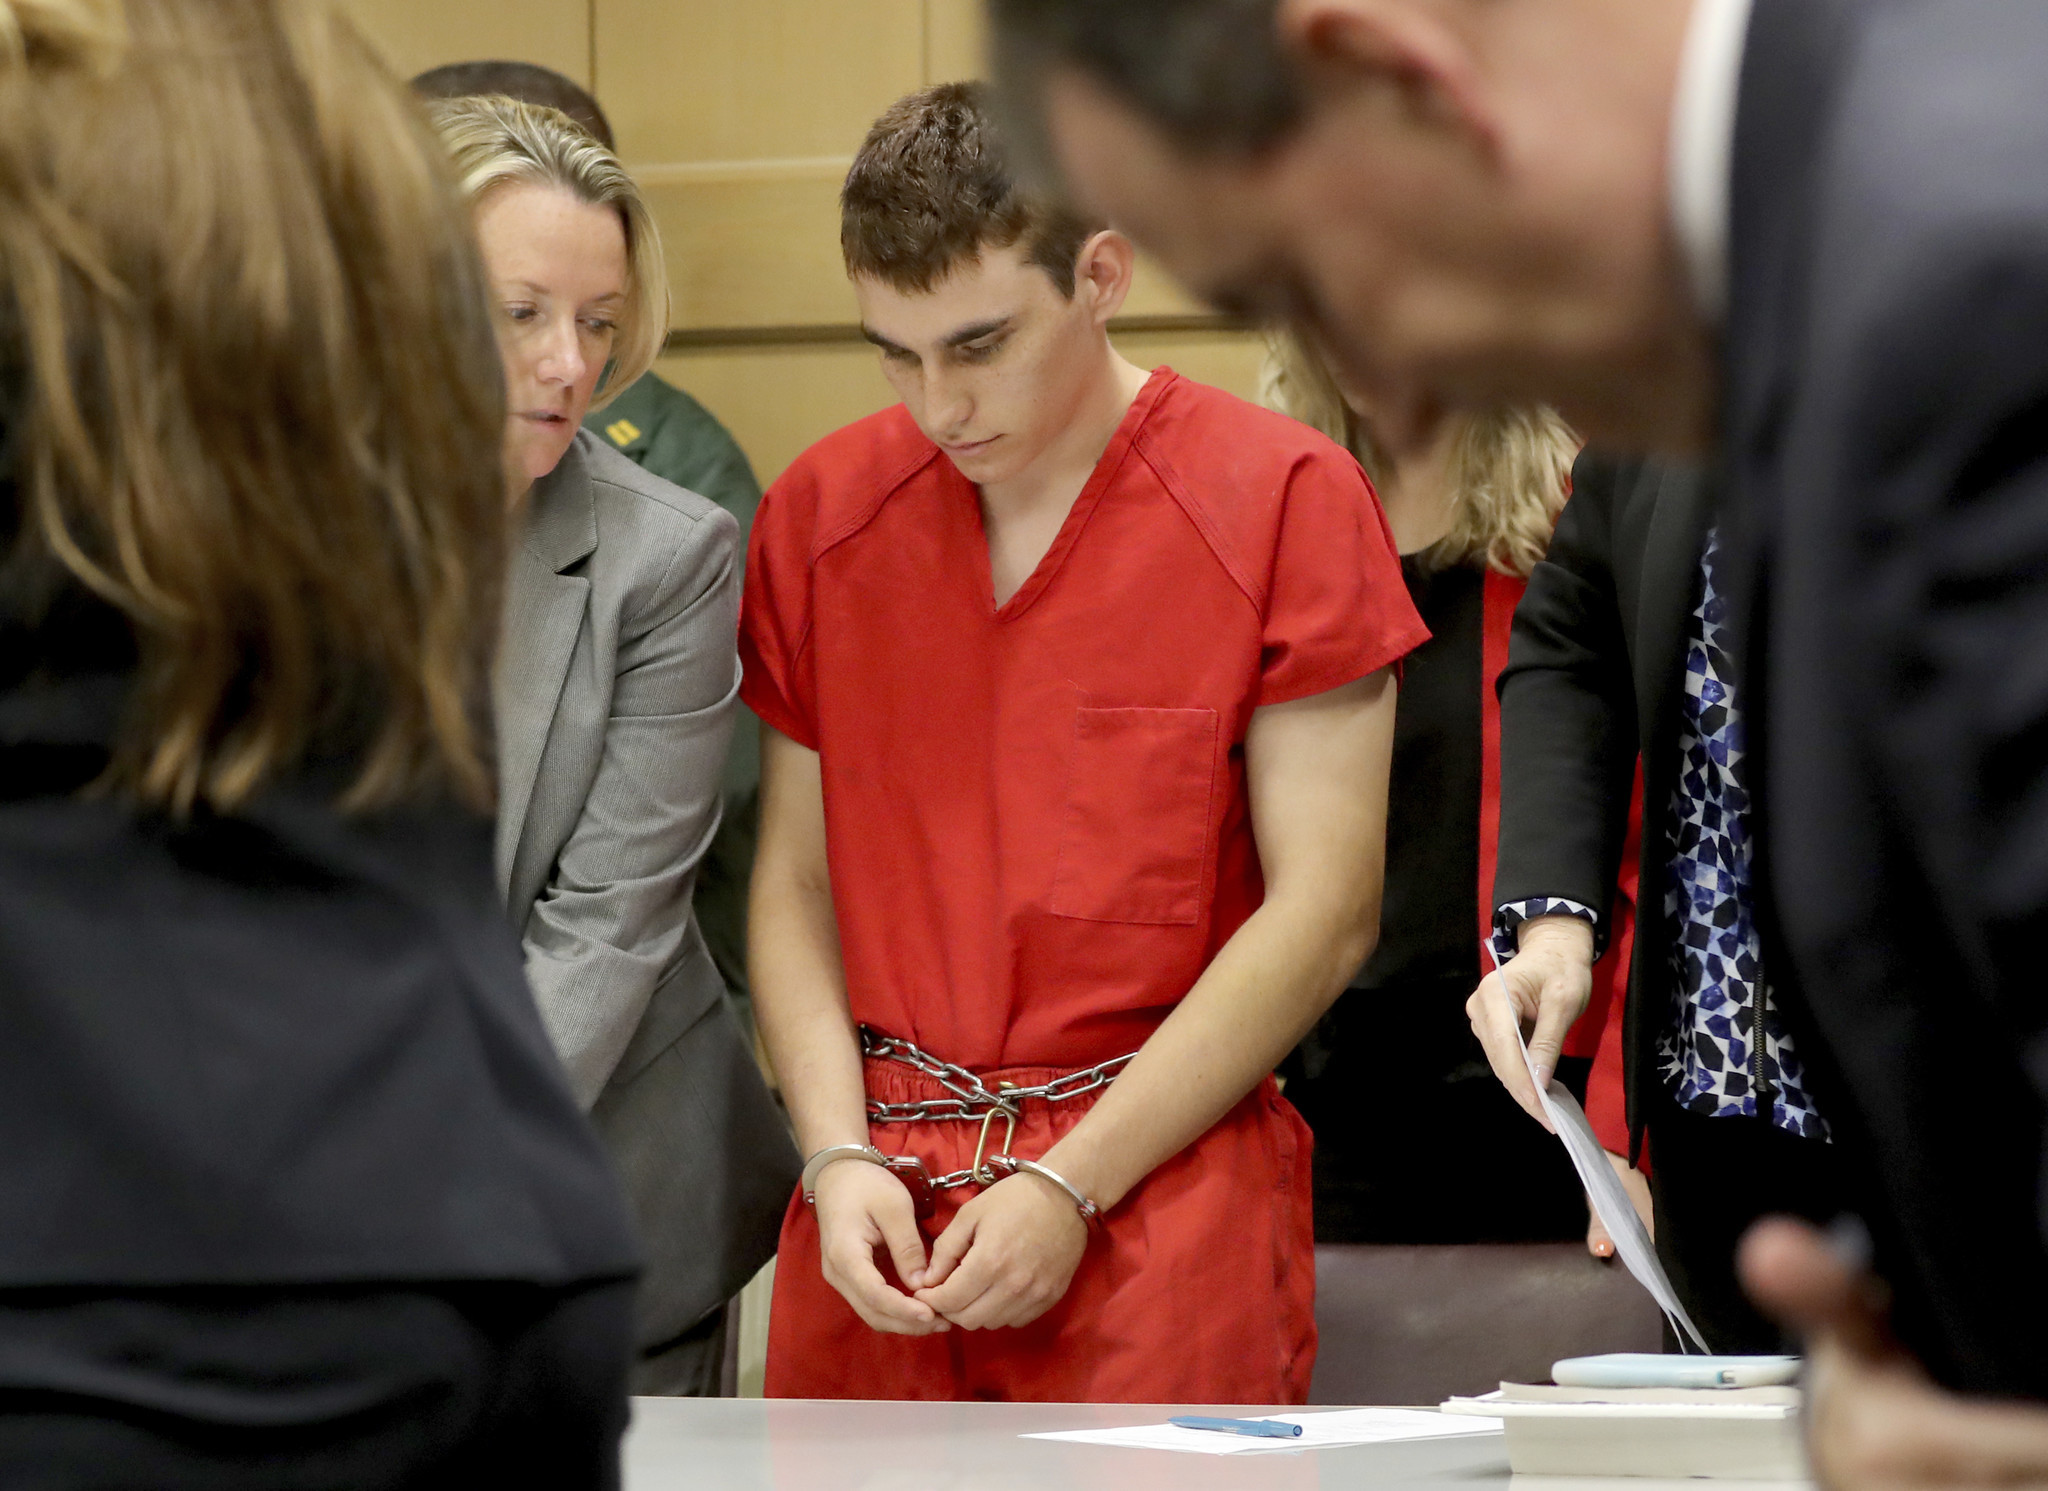 school shooting suspect indicted on 17 counts of murder chicago